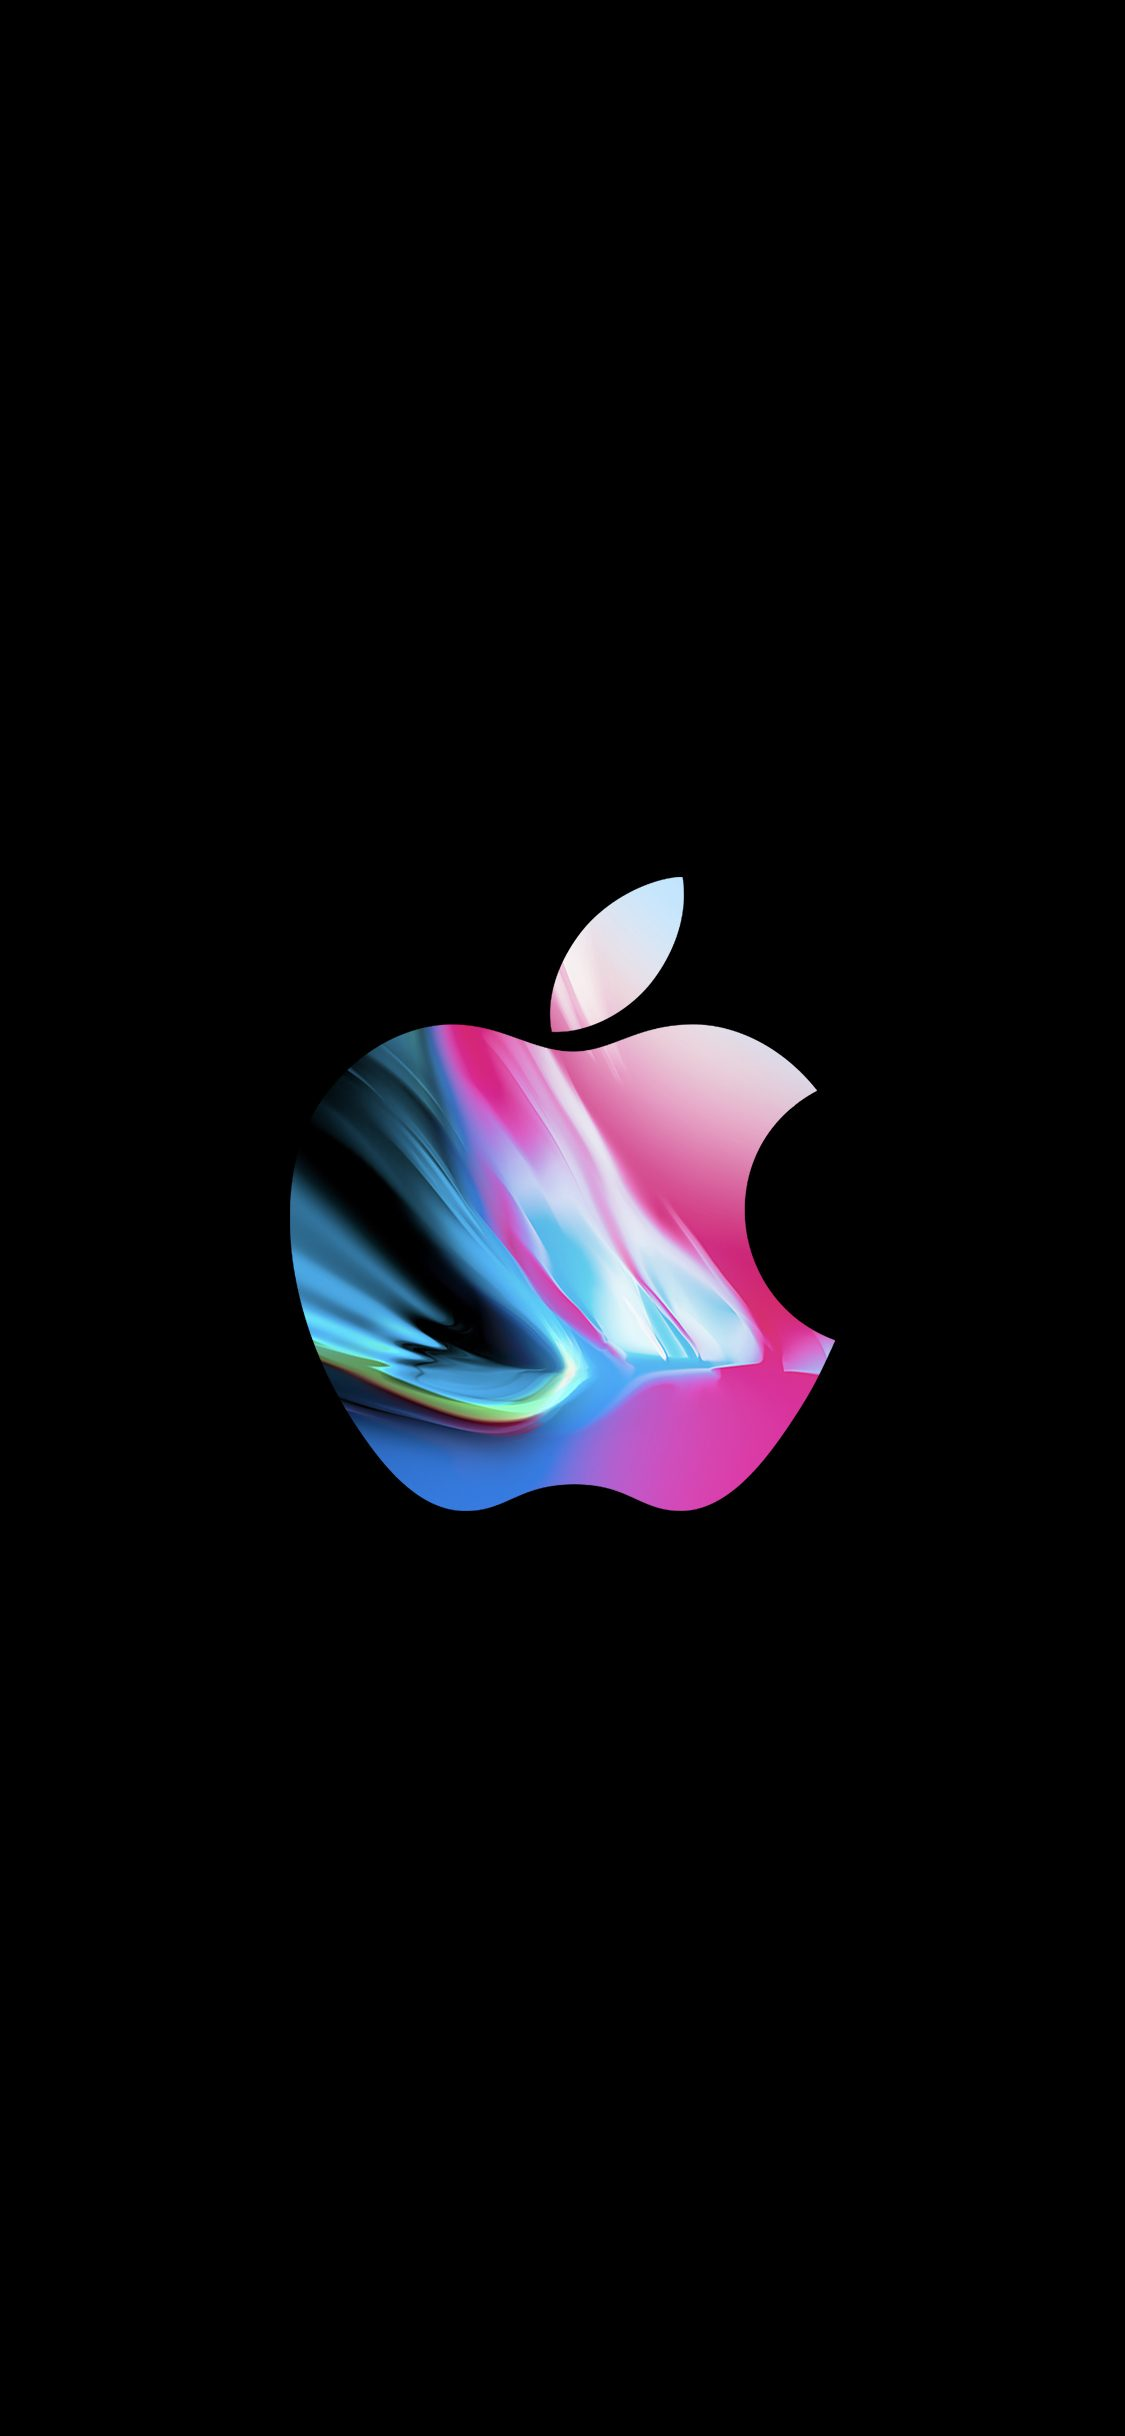 iPhone X Wallpapers | MacRumors Forums